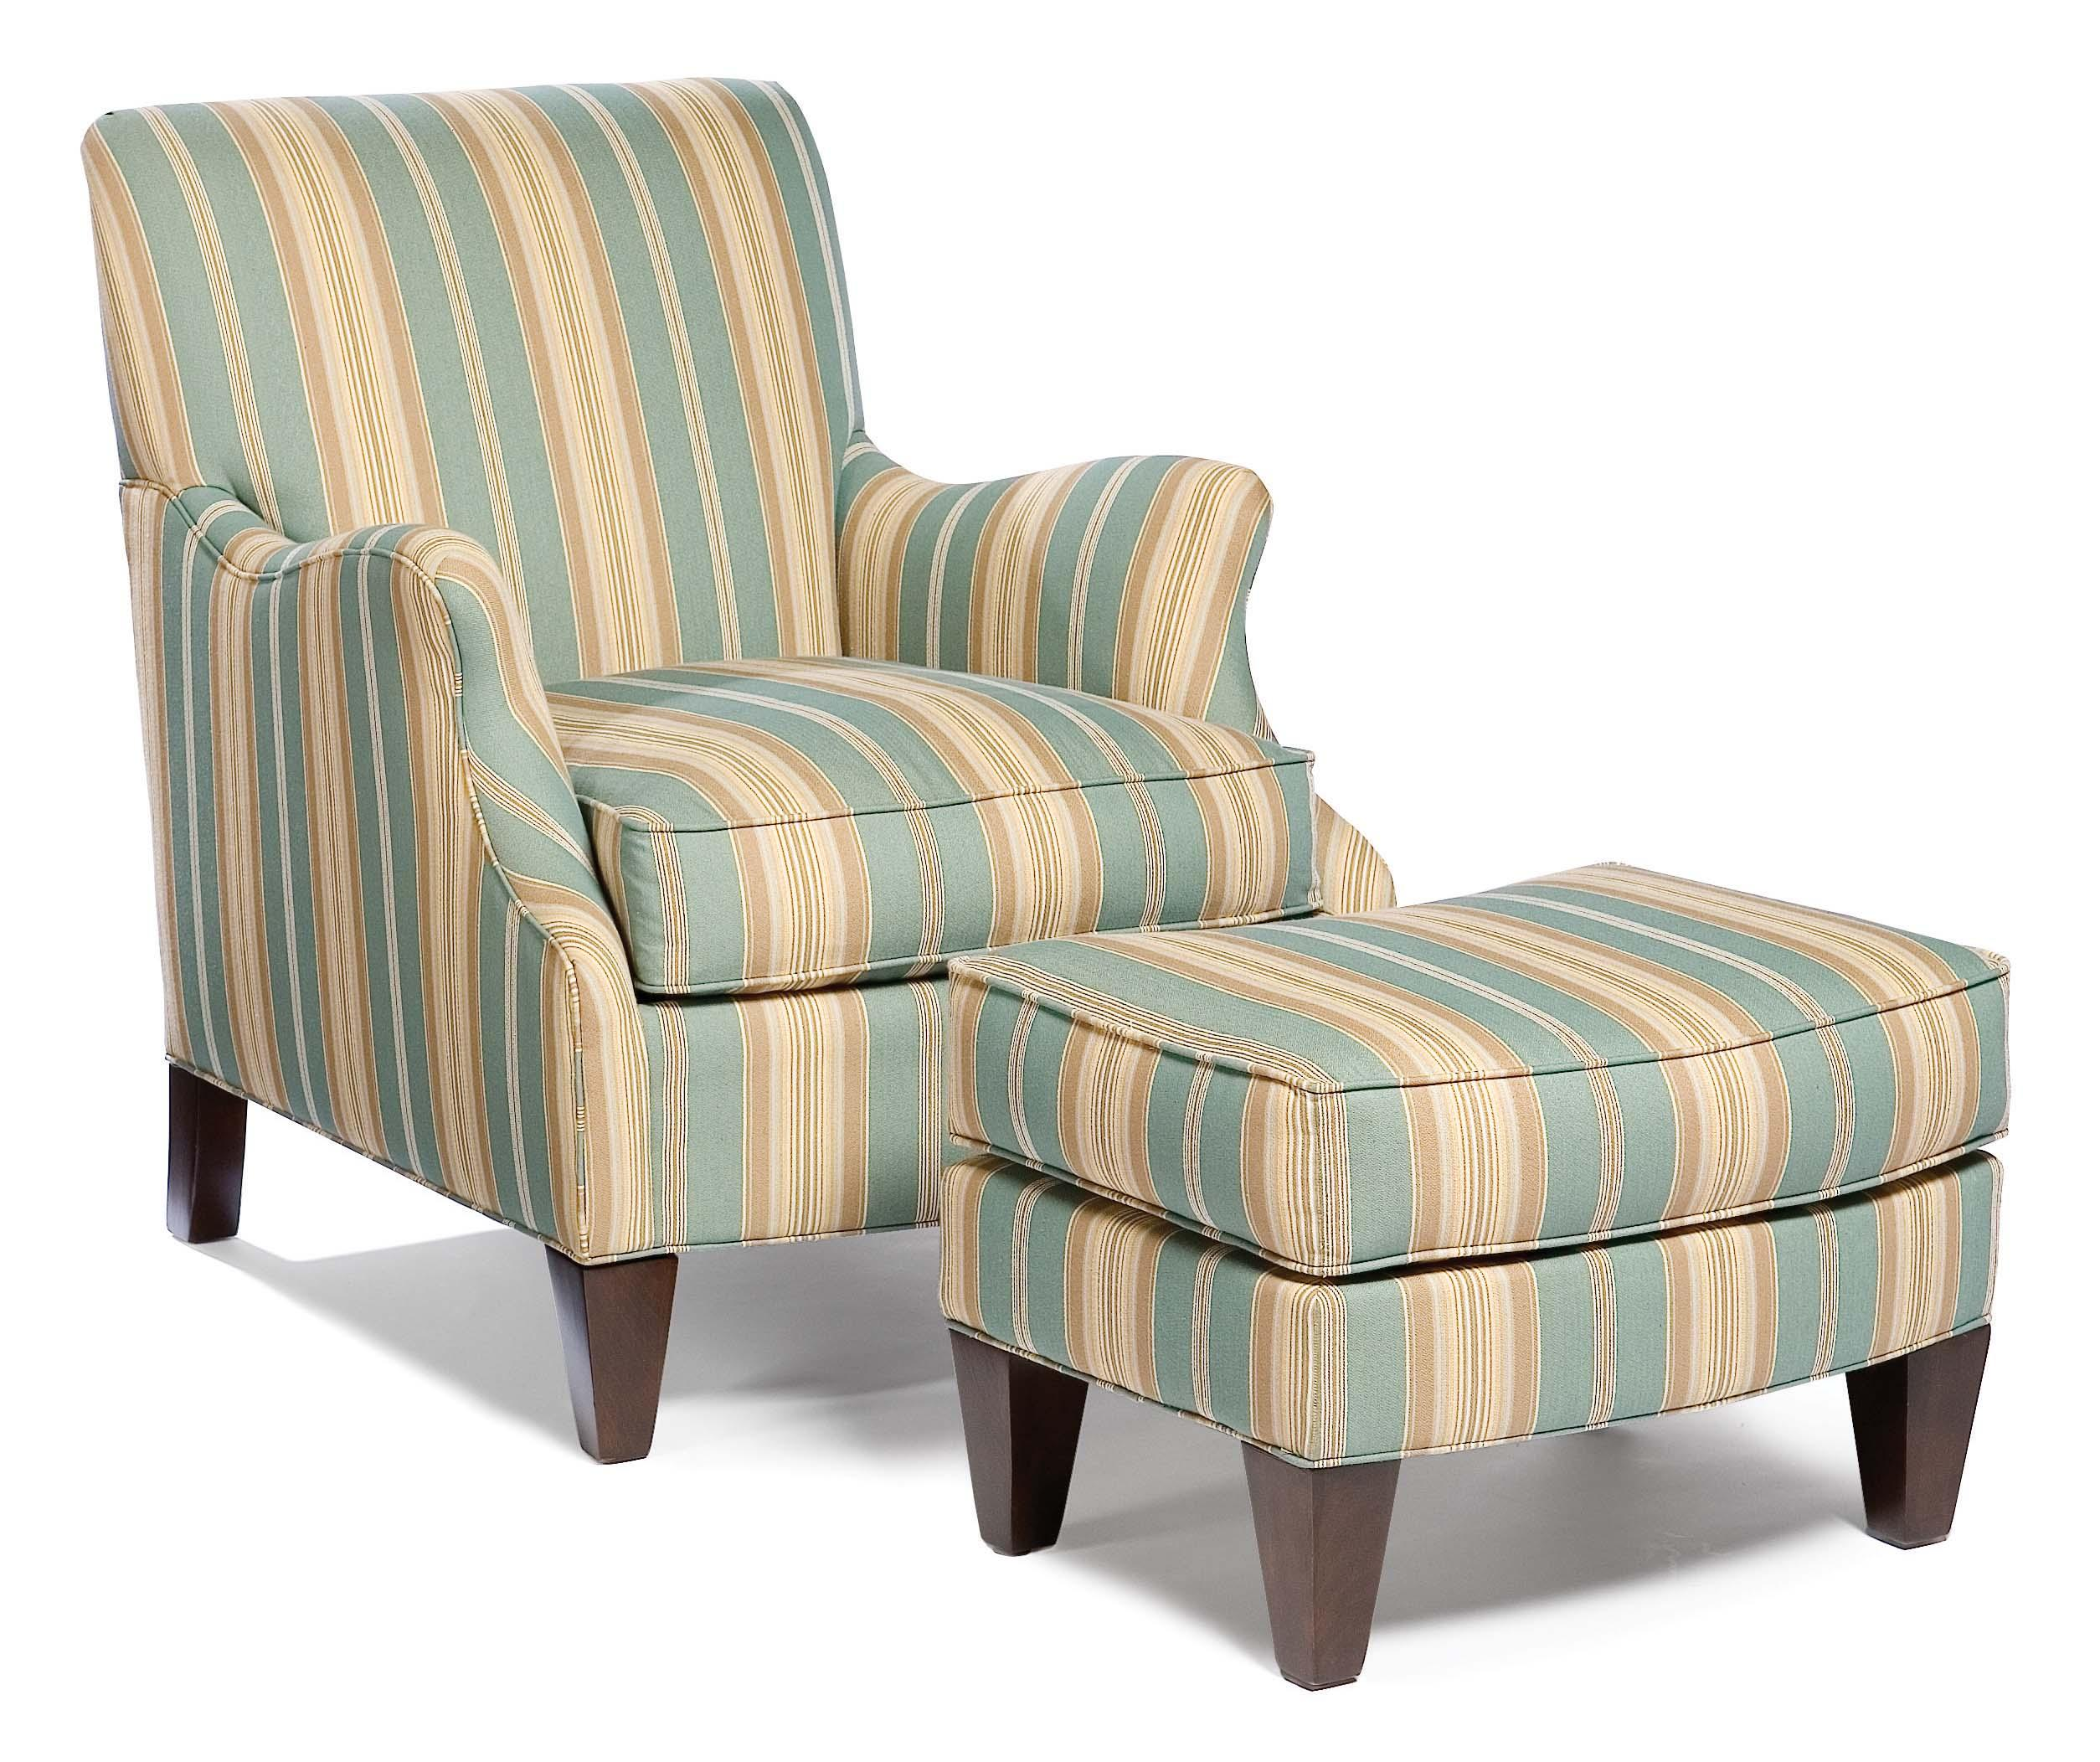 5706 Stationary Chair and Ottoman by Fairfield at Lindy's Furniture Company